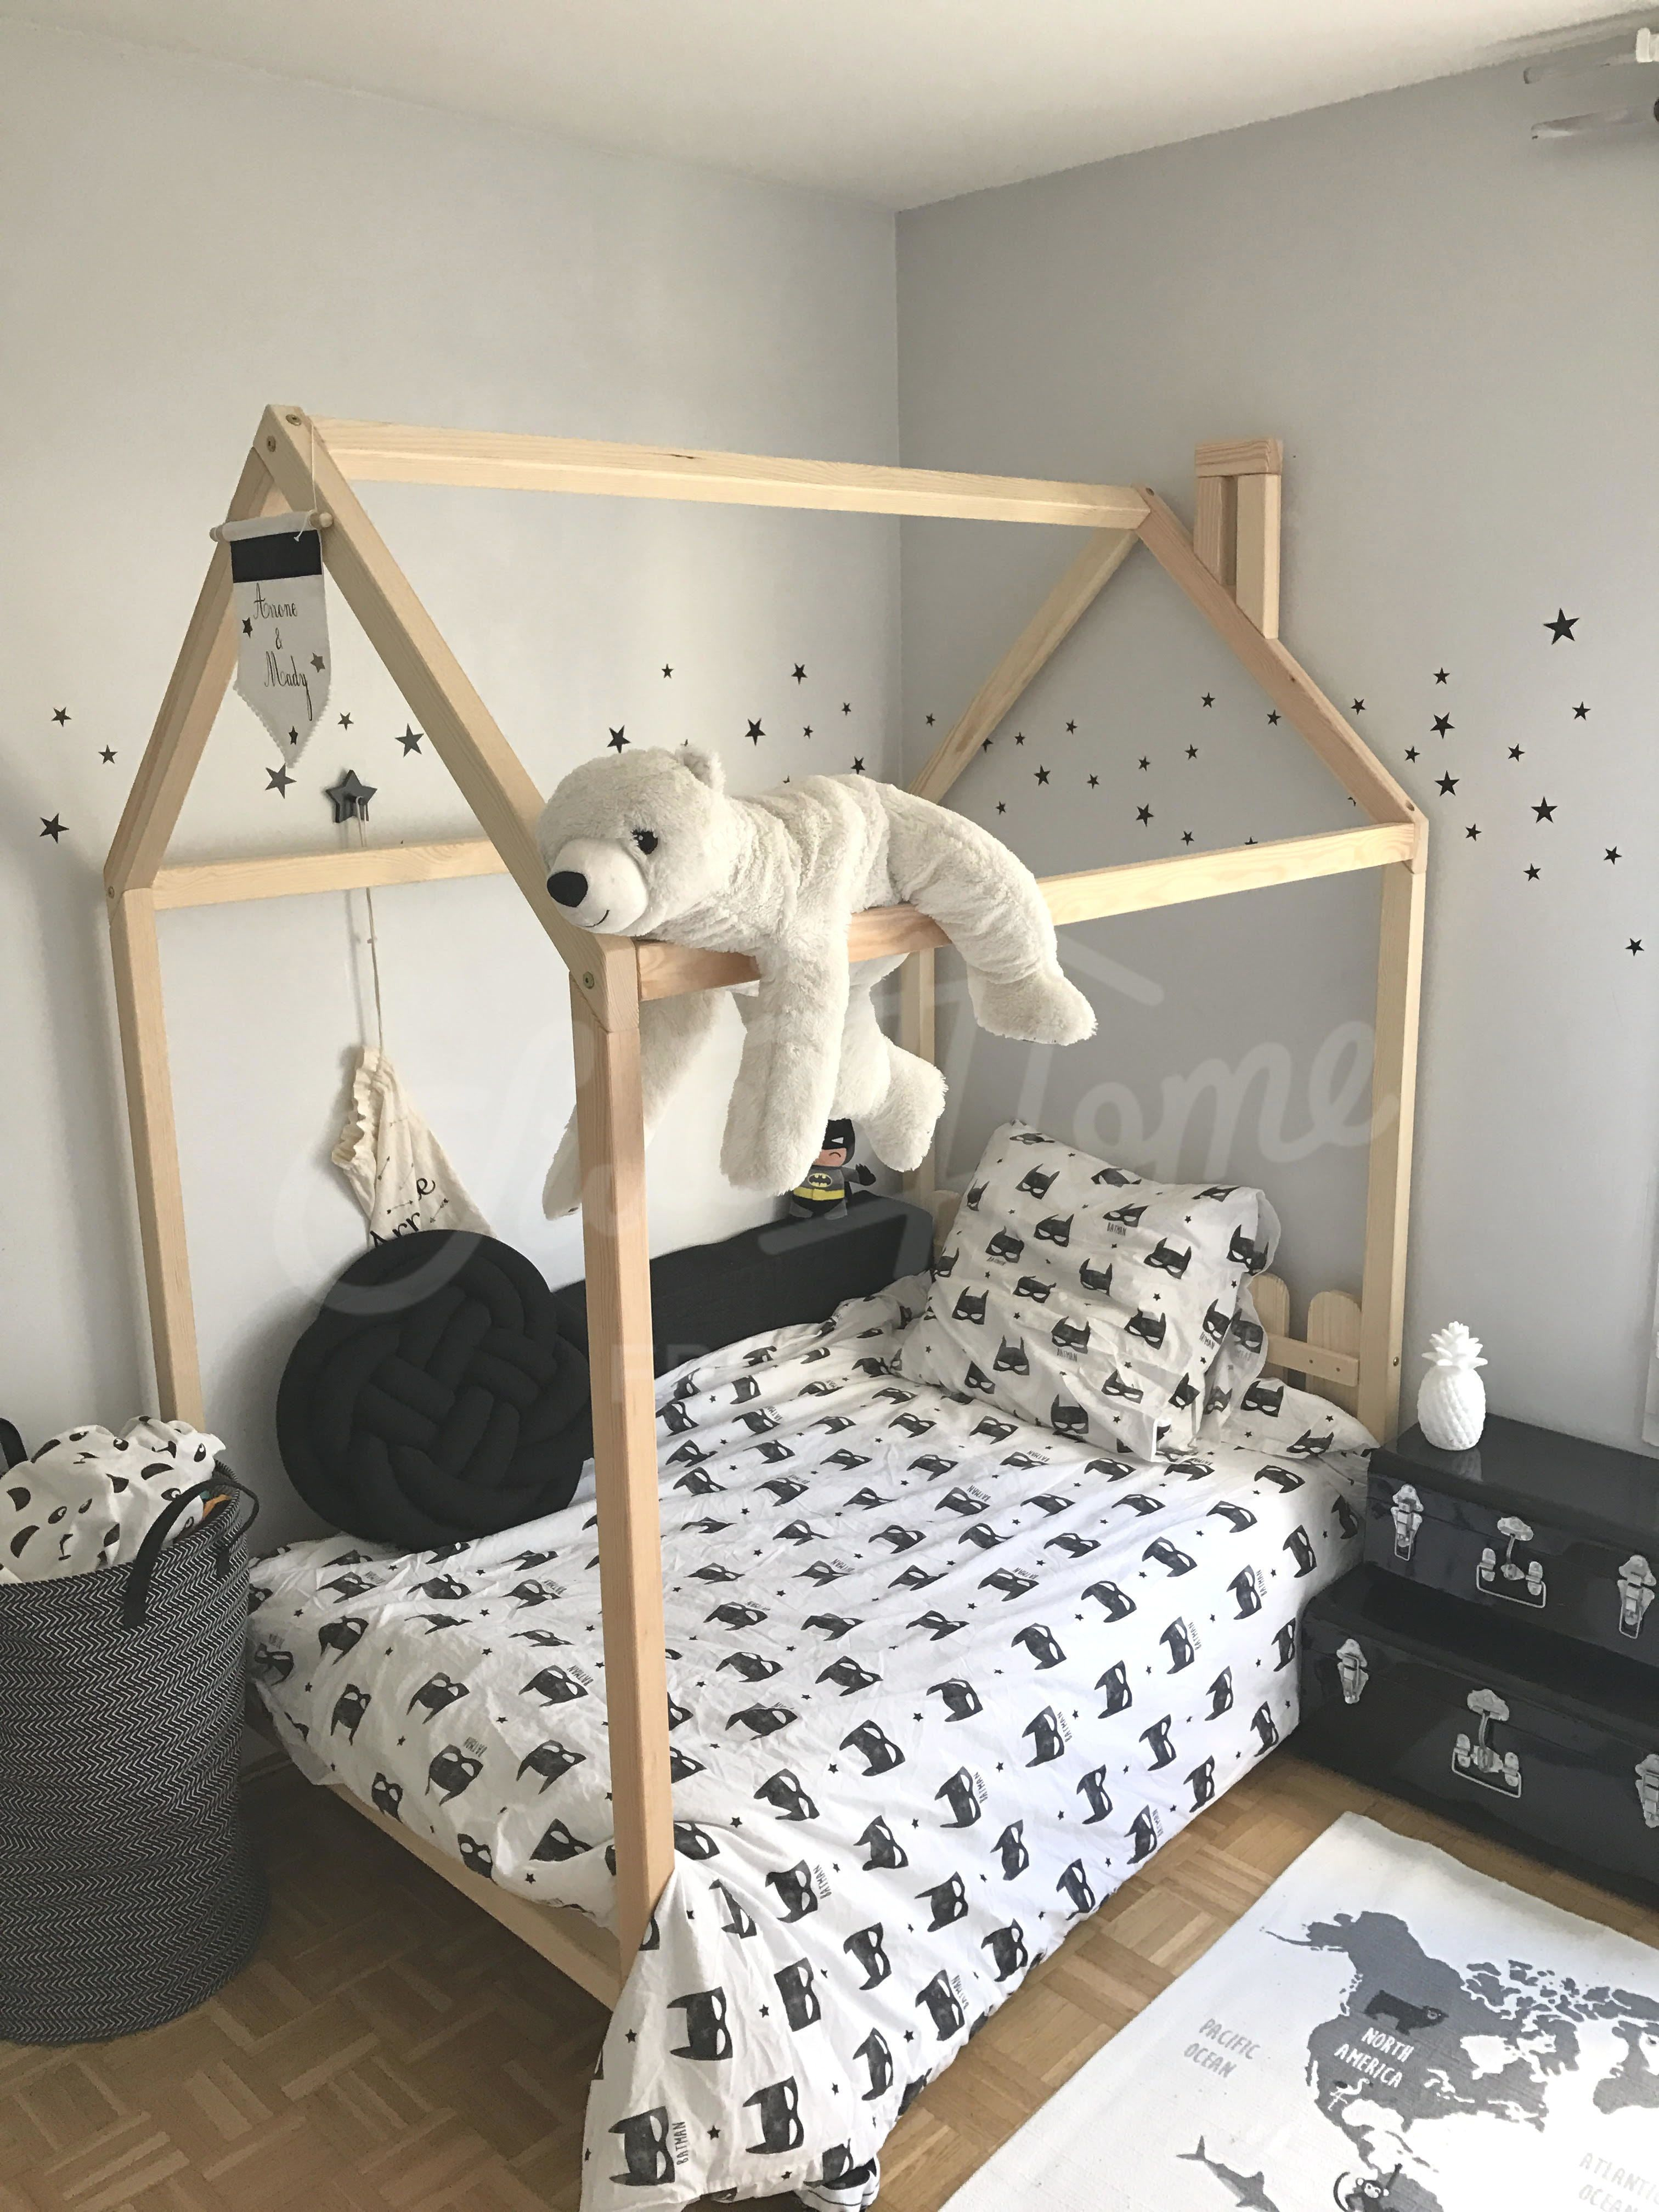 Toddler Bed House Shaped Bed Loft Bed Nursery Wood House Bed Etsy In 2020 Toddler Bed Frame House Frame Bed Montessori Toddler Bedding